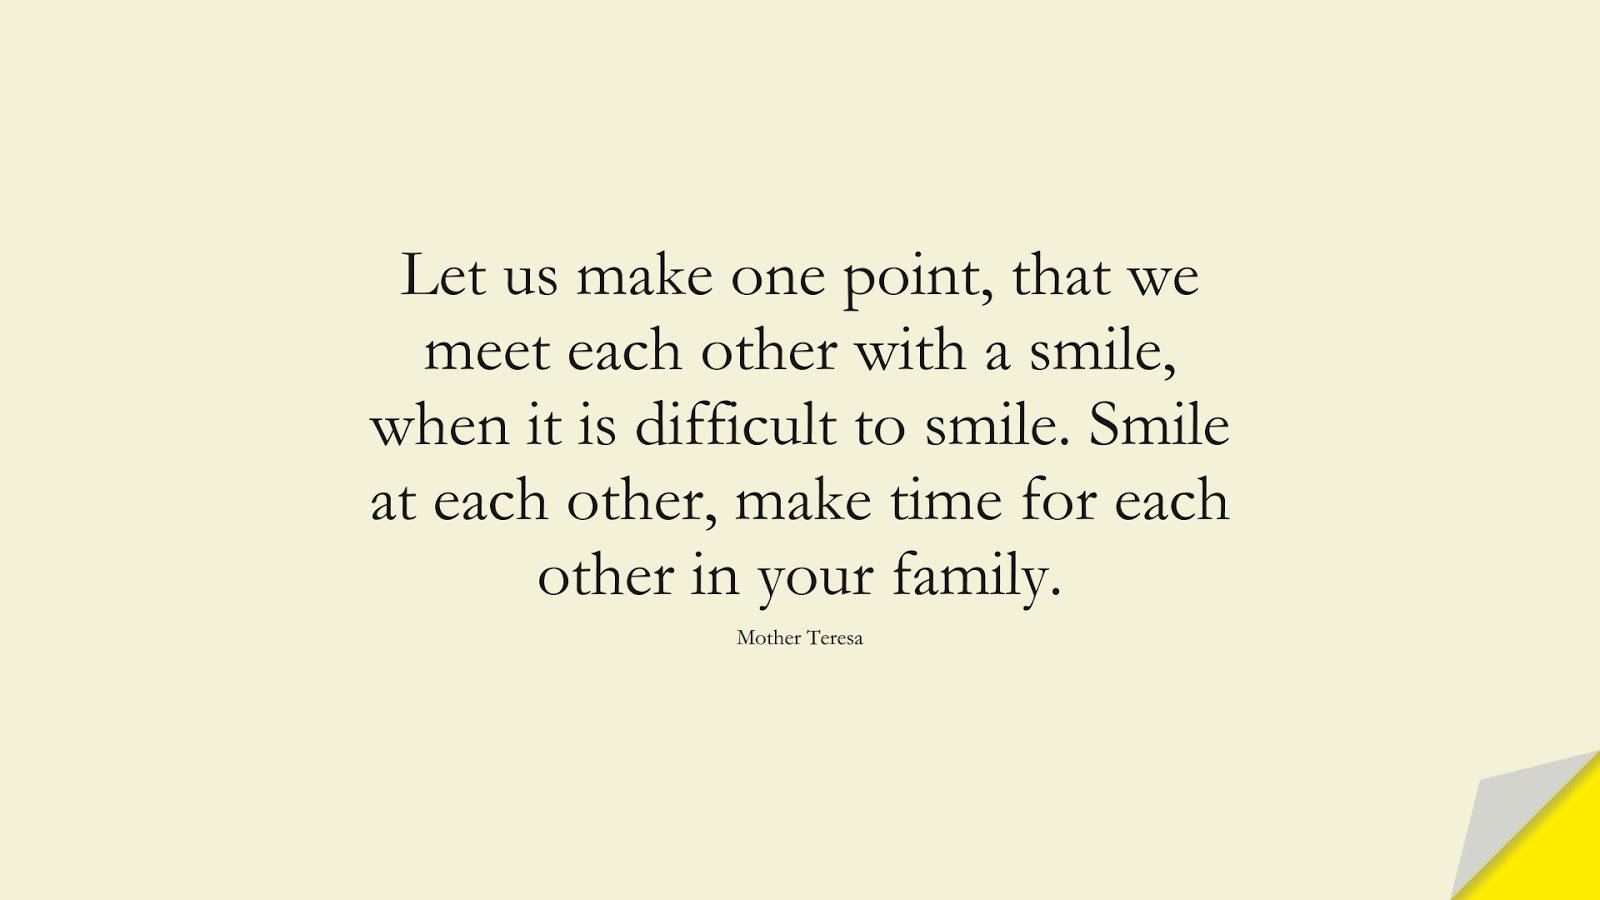 Let us make one point, that we meet each other with a smile, when it is difficult to smile. Smile at each other, make time for each other in your family. (Mother Teresa);  #FamilyQuotes